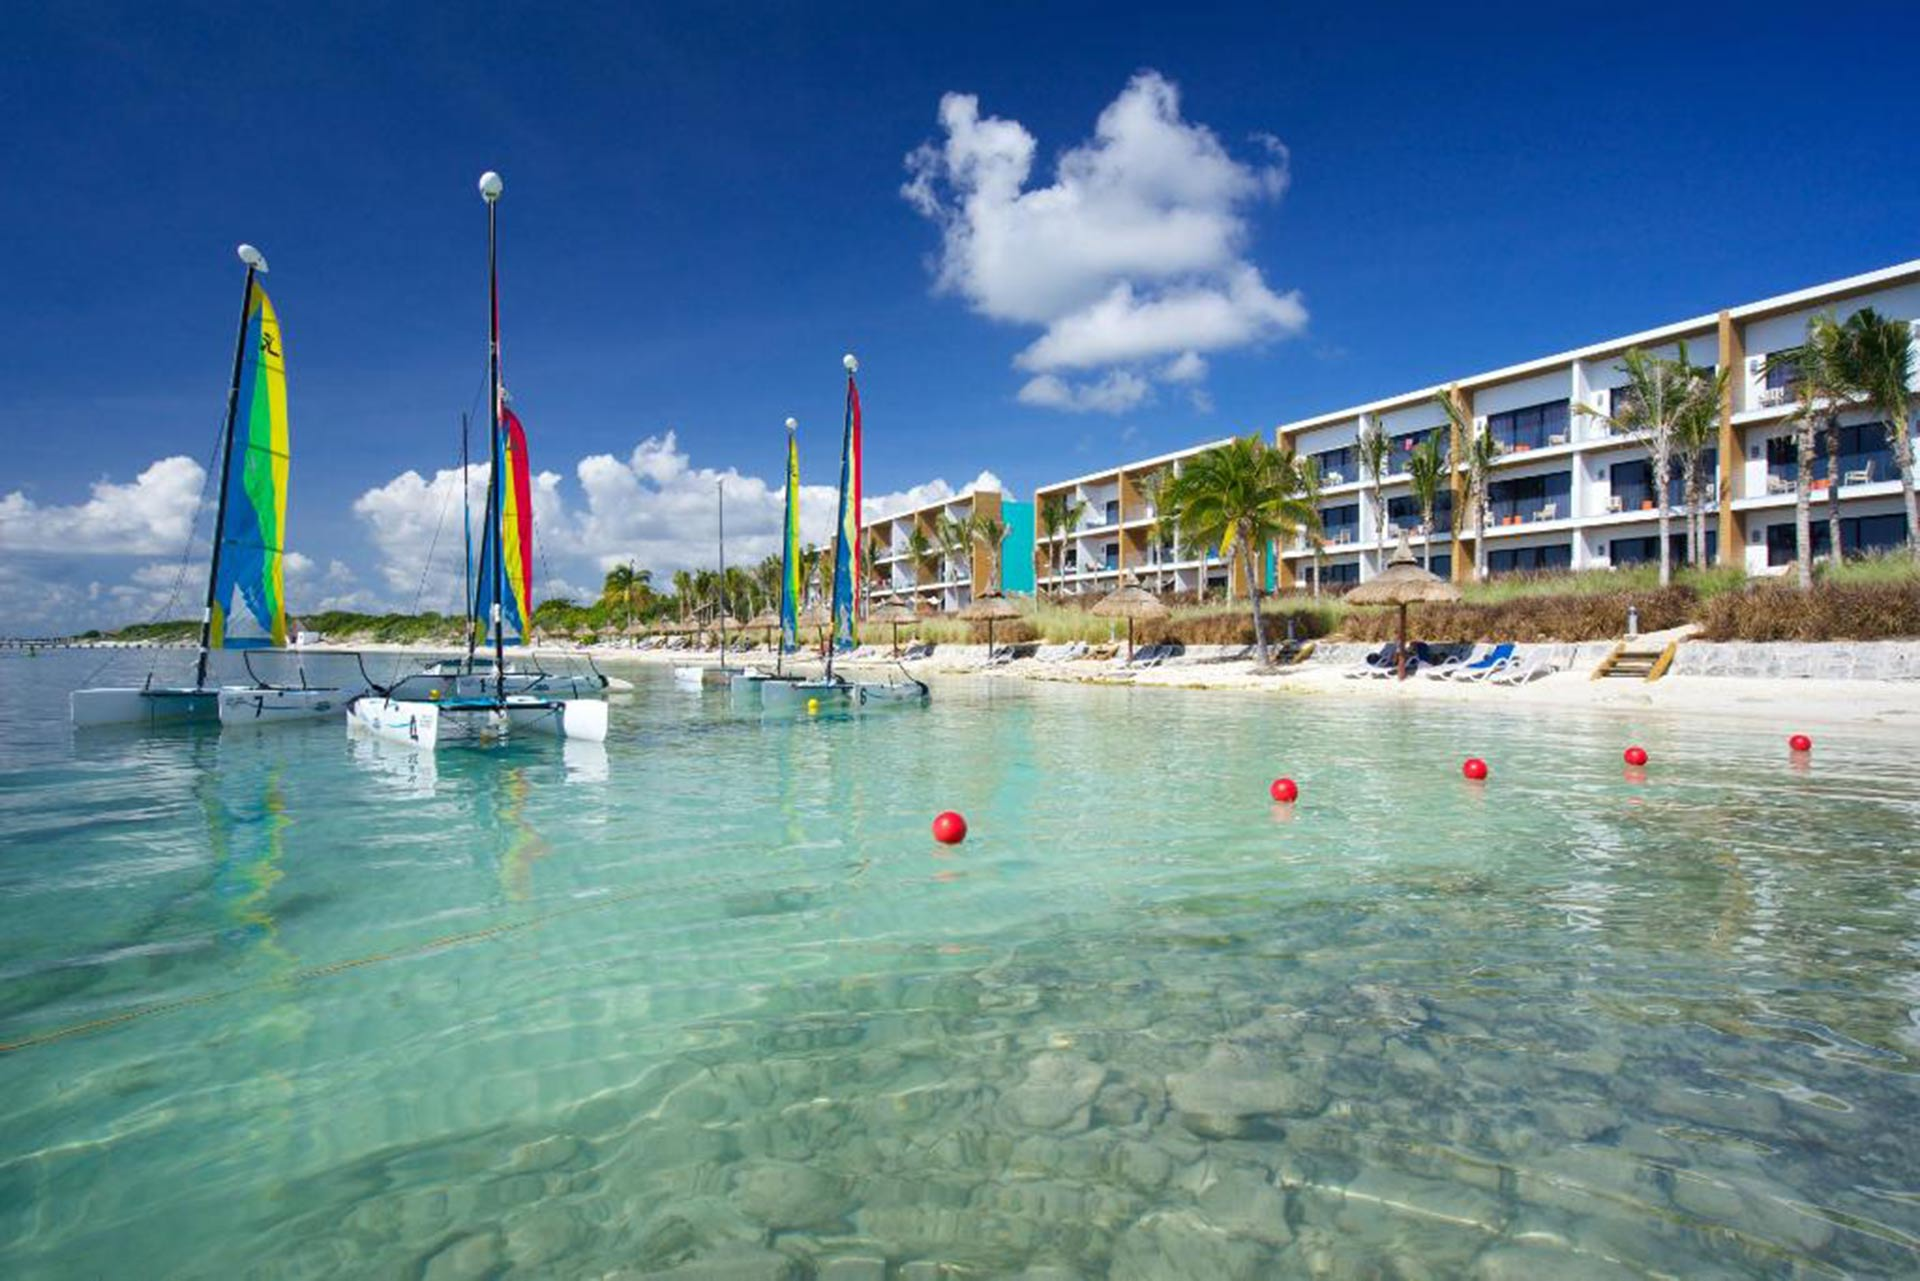 Club Med Cancun Yucatan - Cancun, MX - All Inclusive Resort